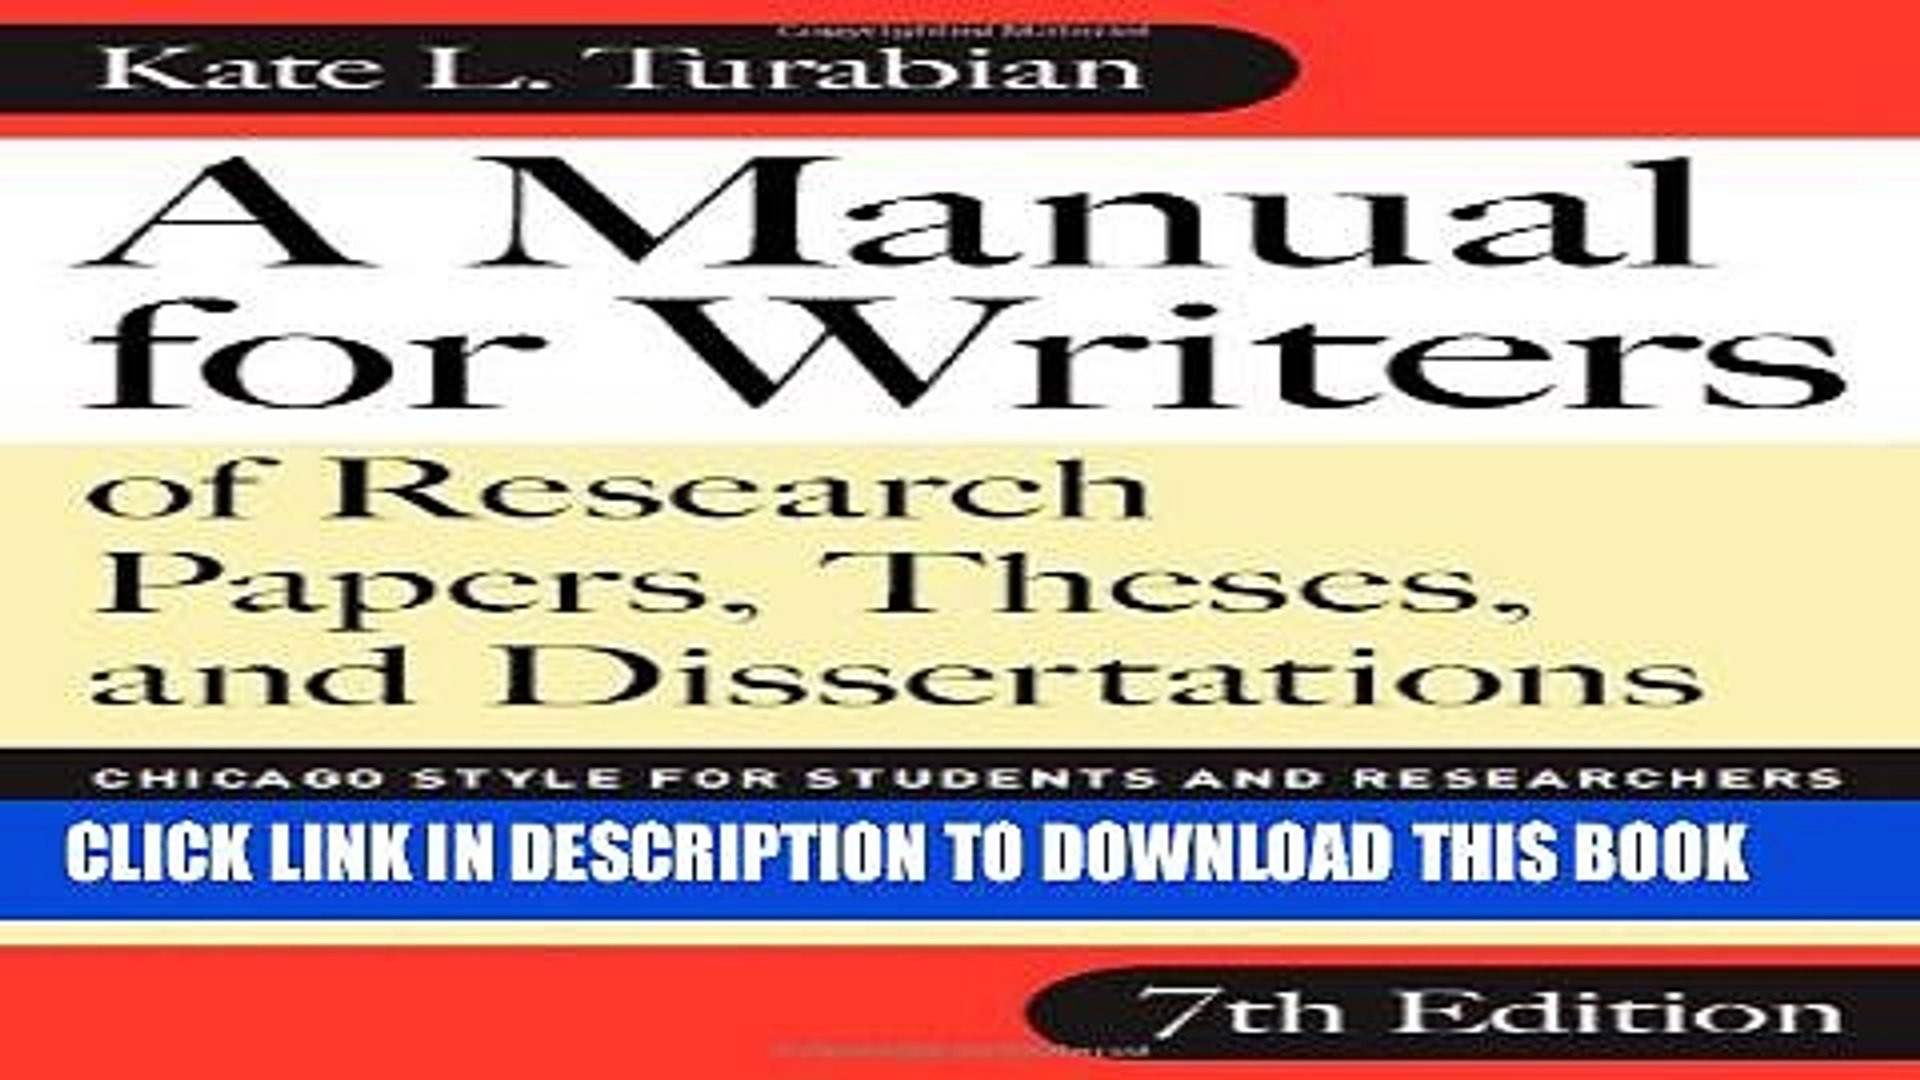 021 Research Paper Manual For Writers Of Papers Theses And Dissertations X1080 Sensational A 8th Edition Pdf Eighth 1920